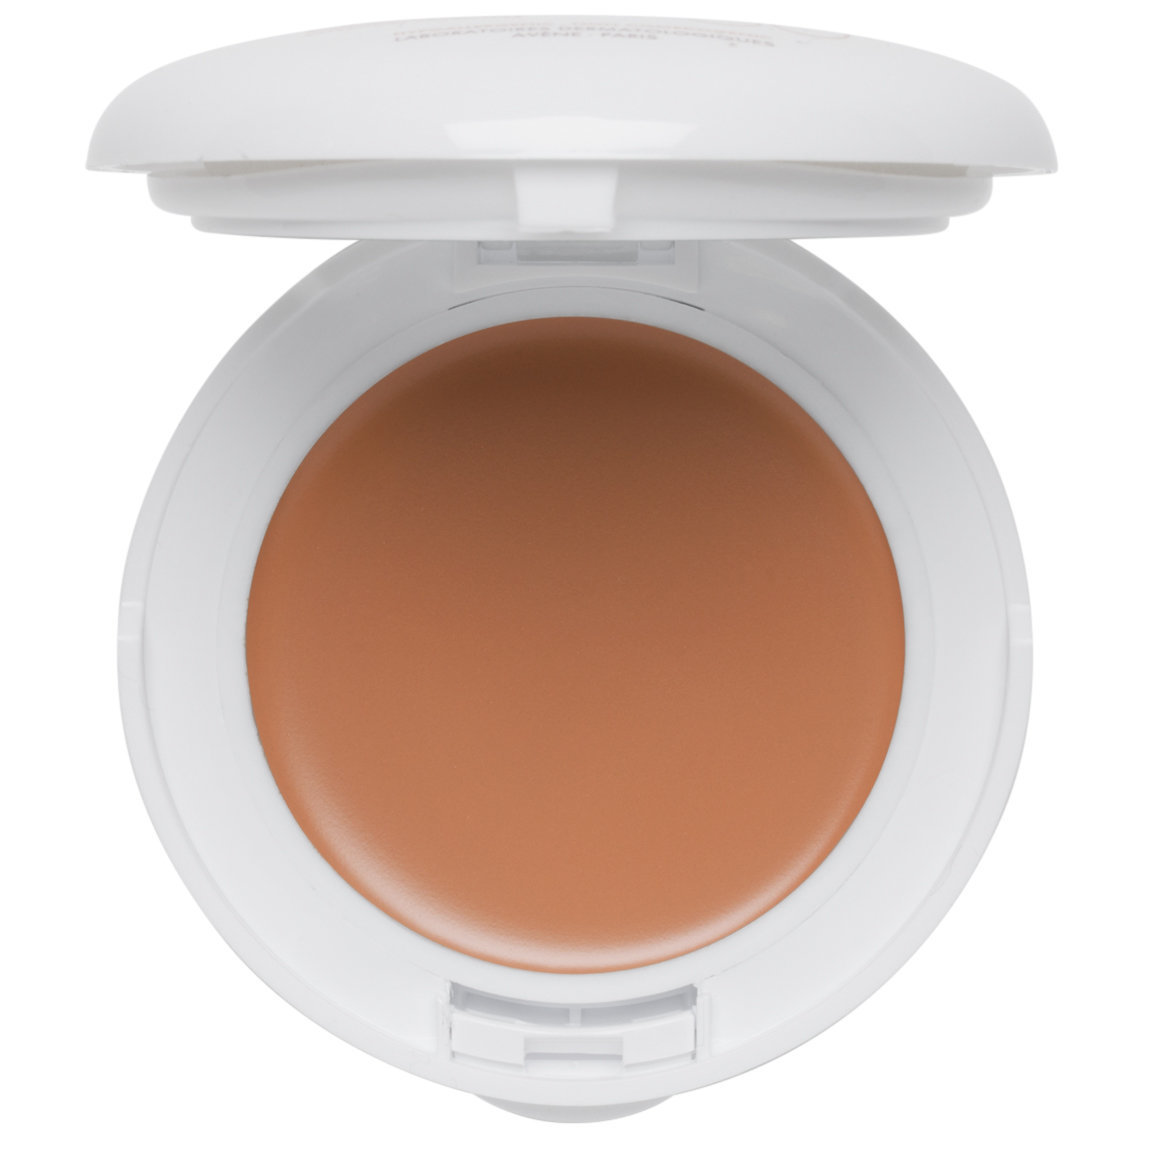 Eau Thermale Avène Mineral High Protection Tinted Compact SPF 50 Honey product swatch.